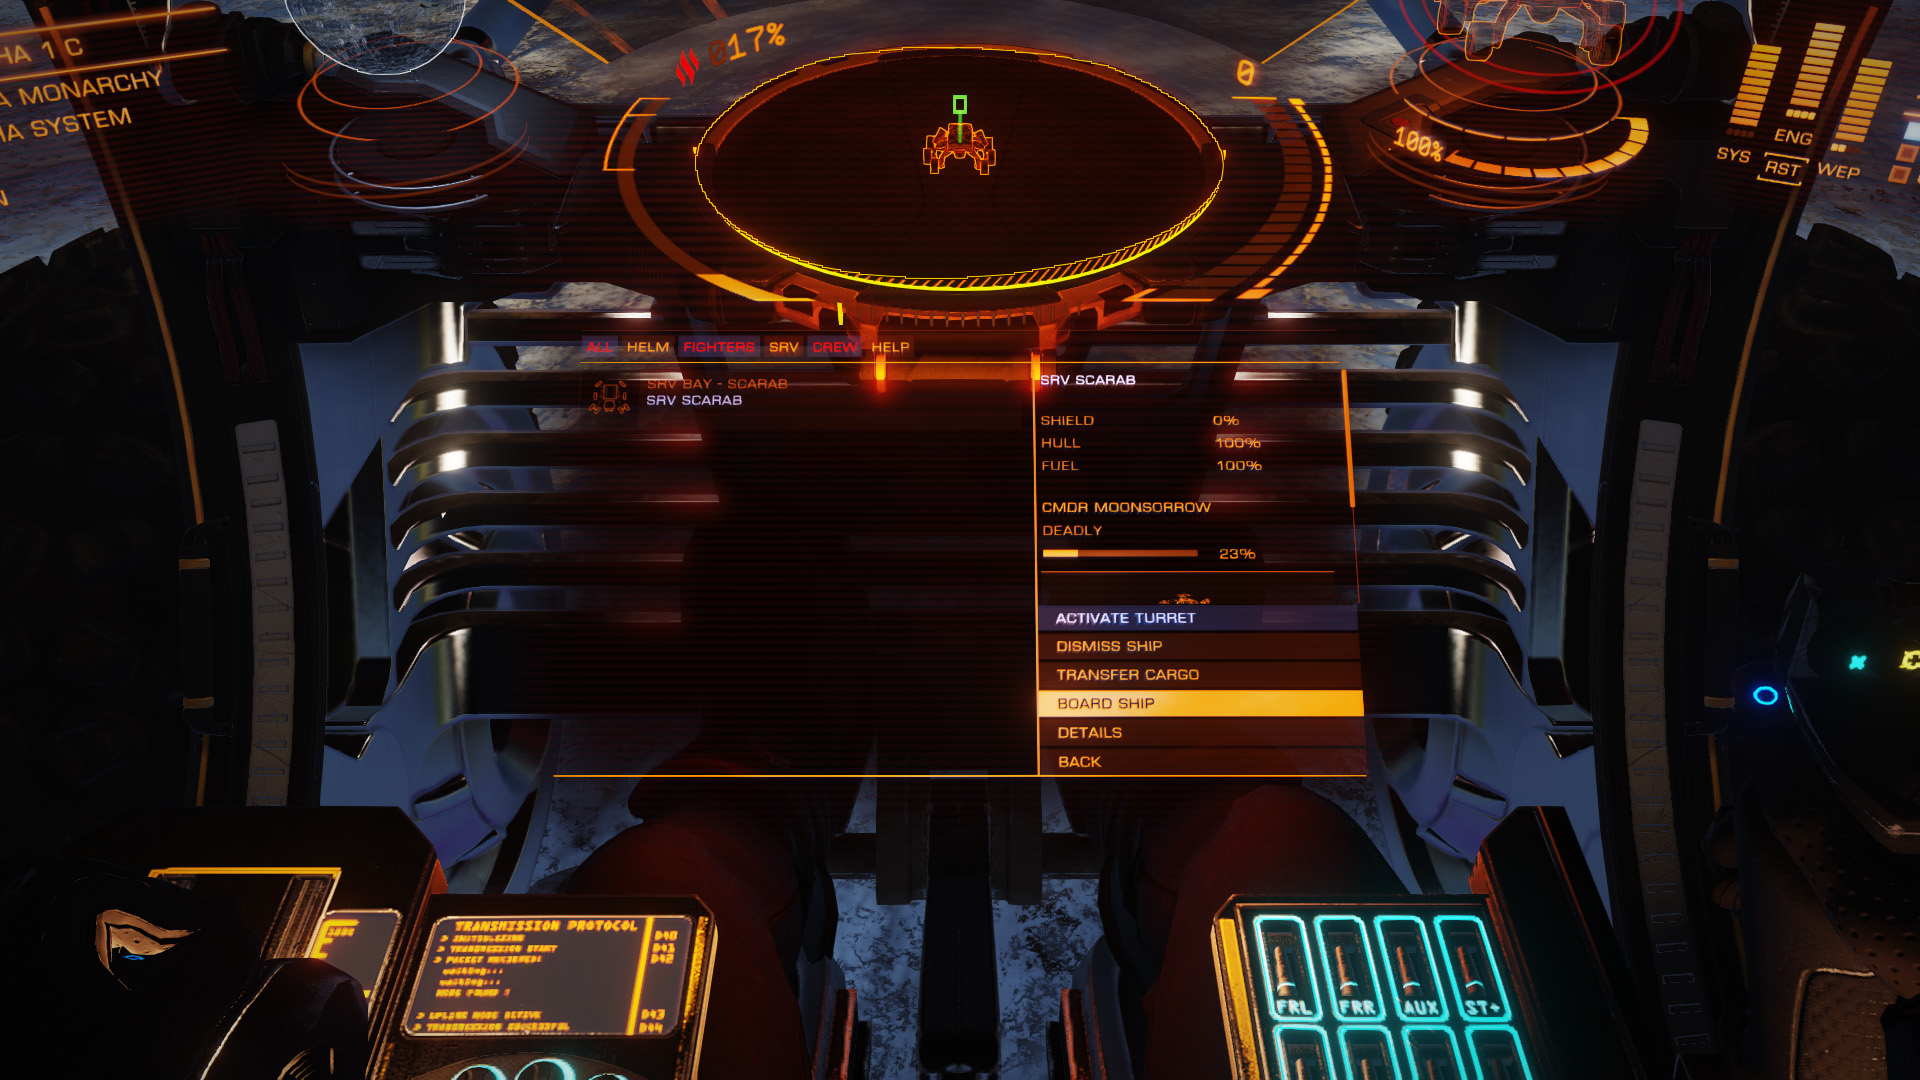 Using the role panel to reboard the ship